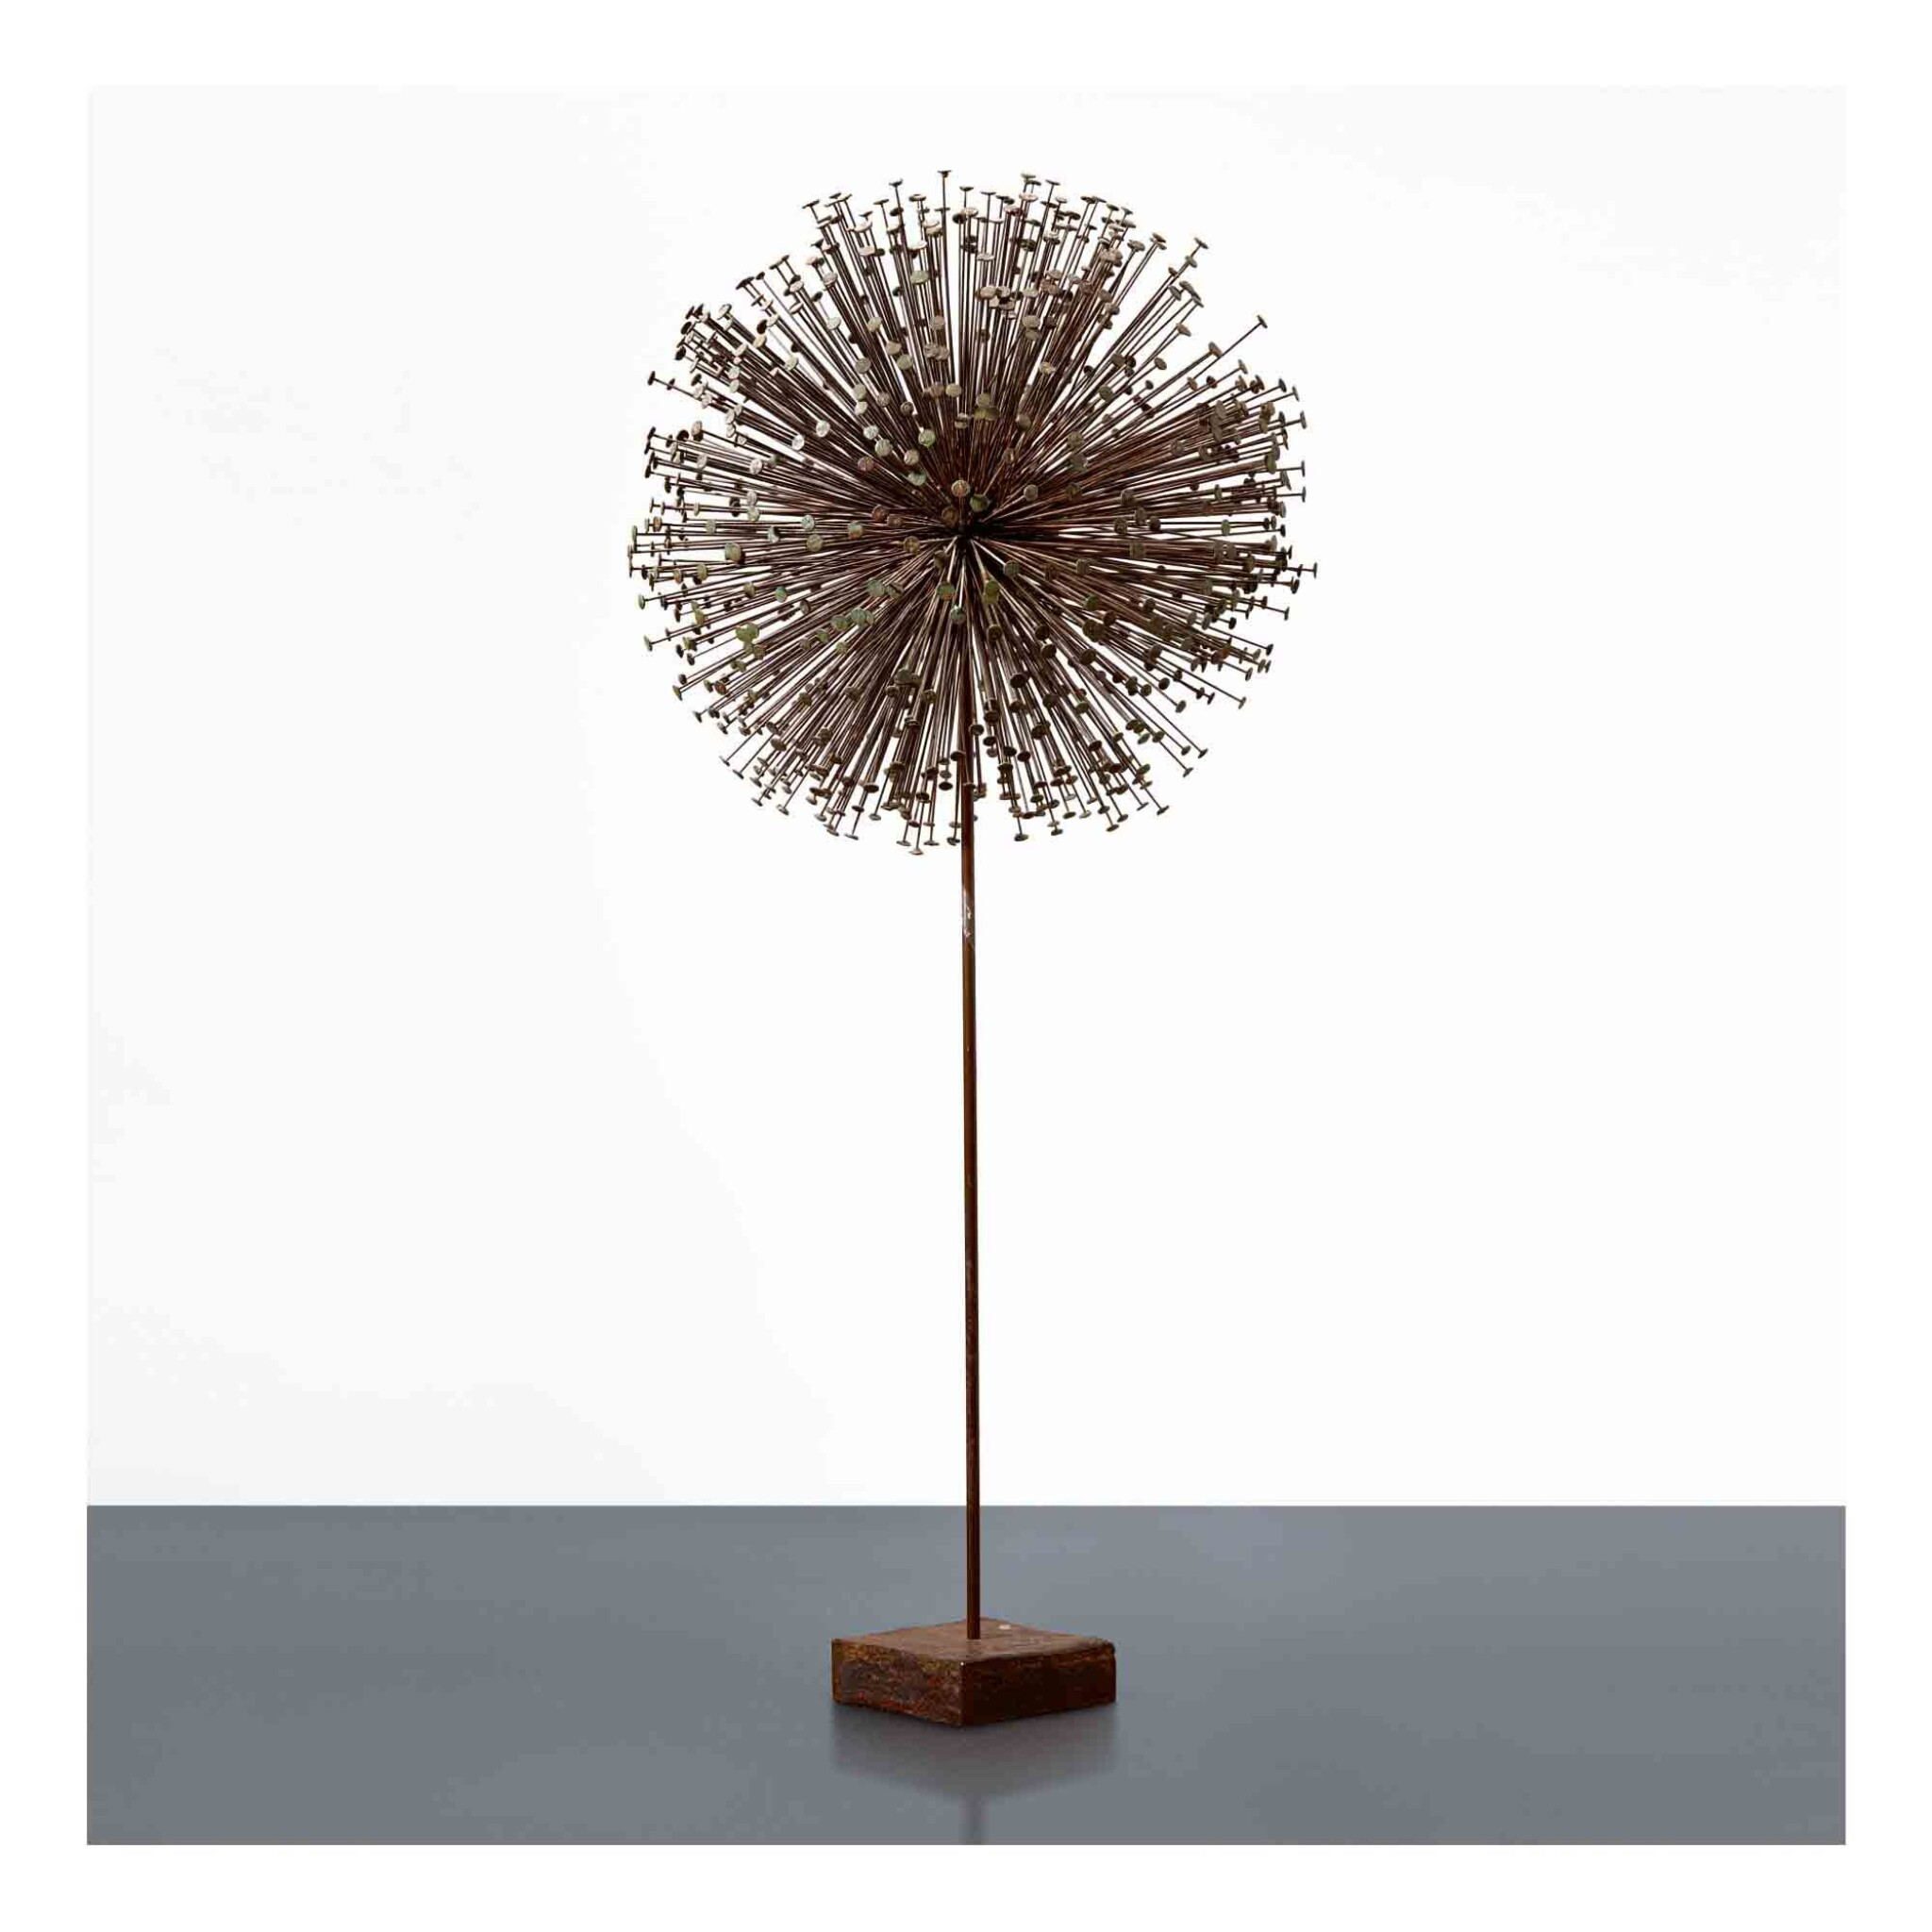 View 1 of Lot 422. Untitled (Dandelion).